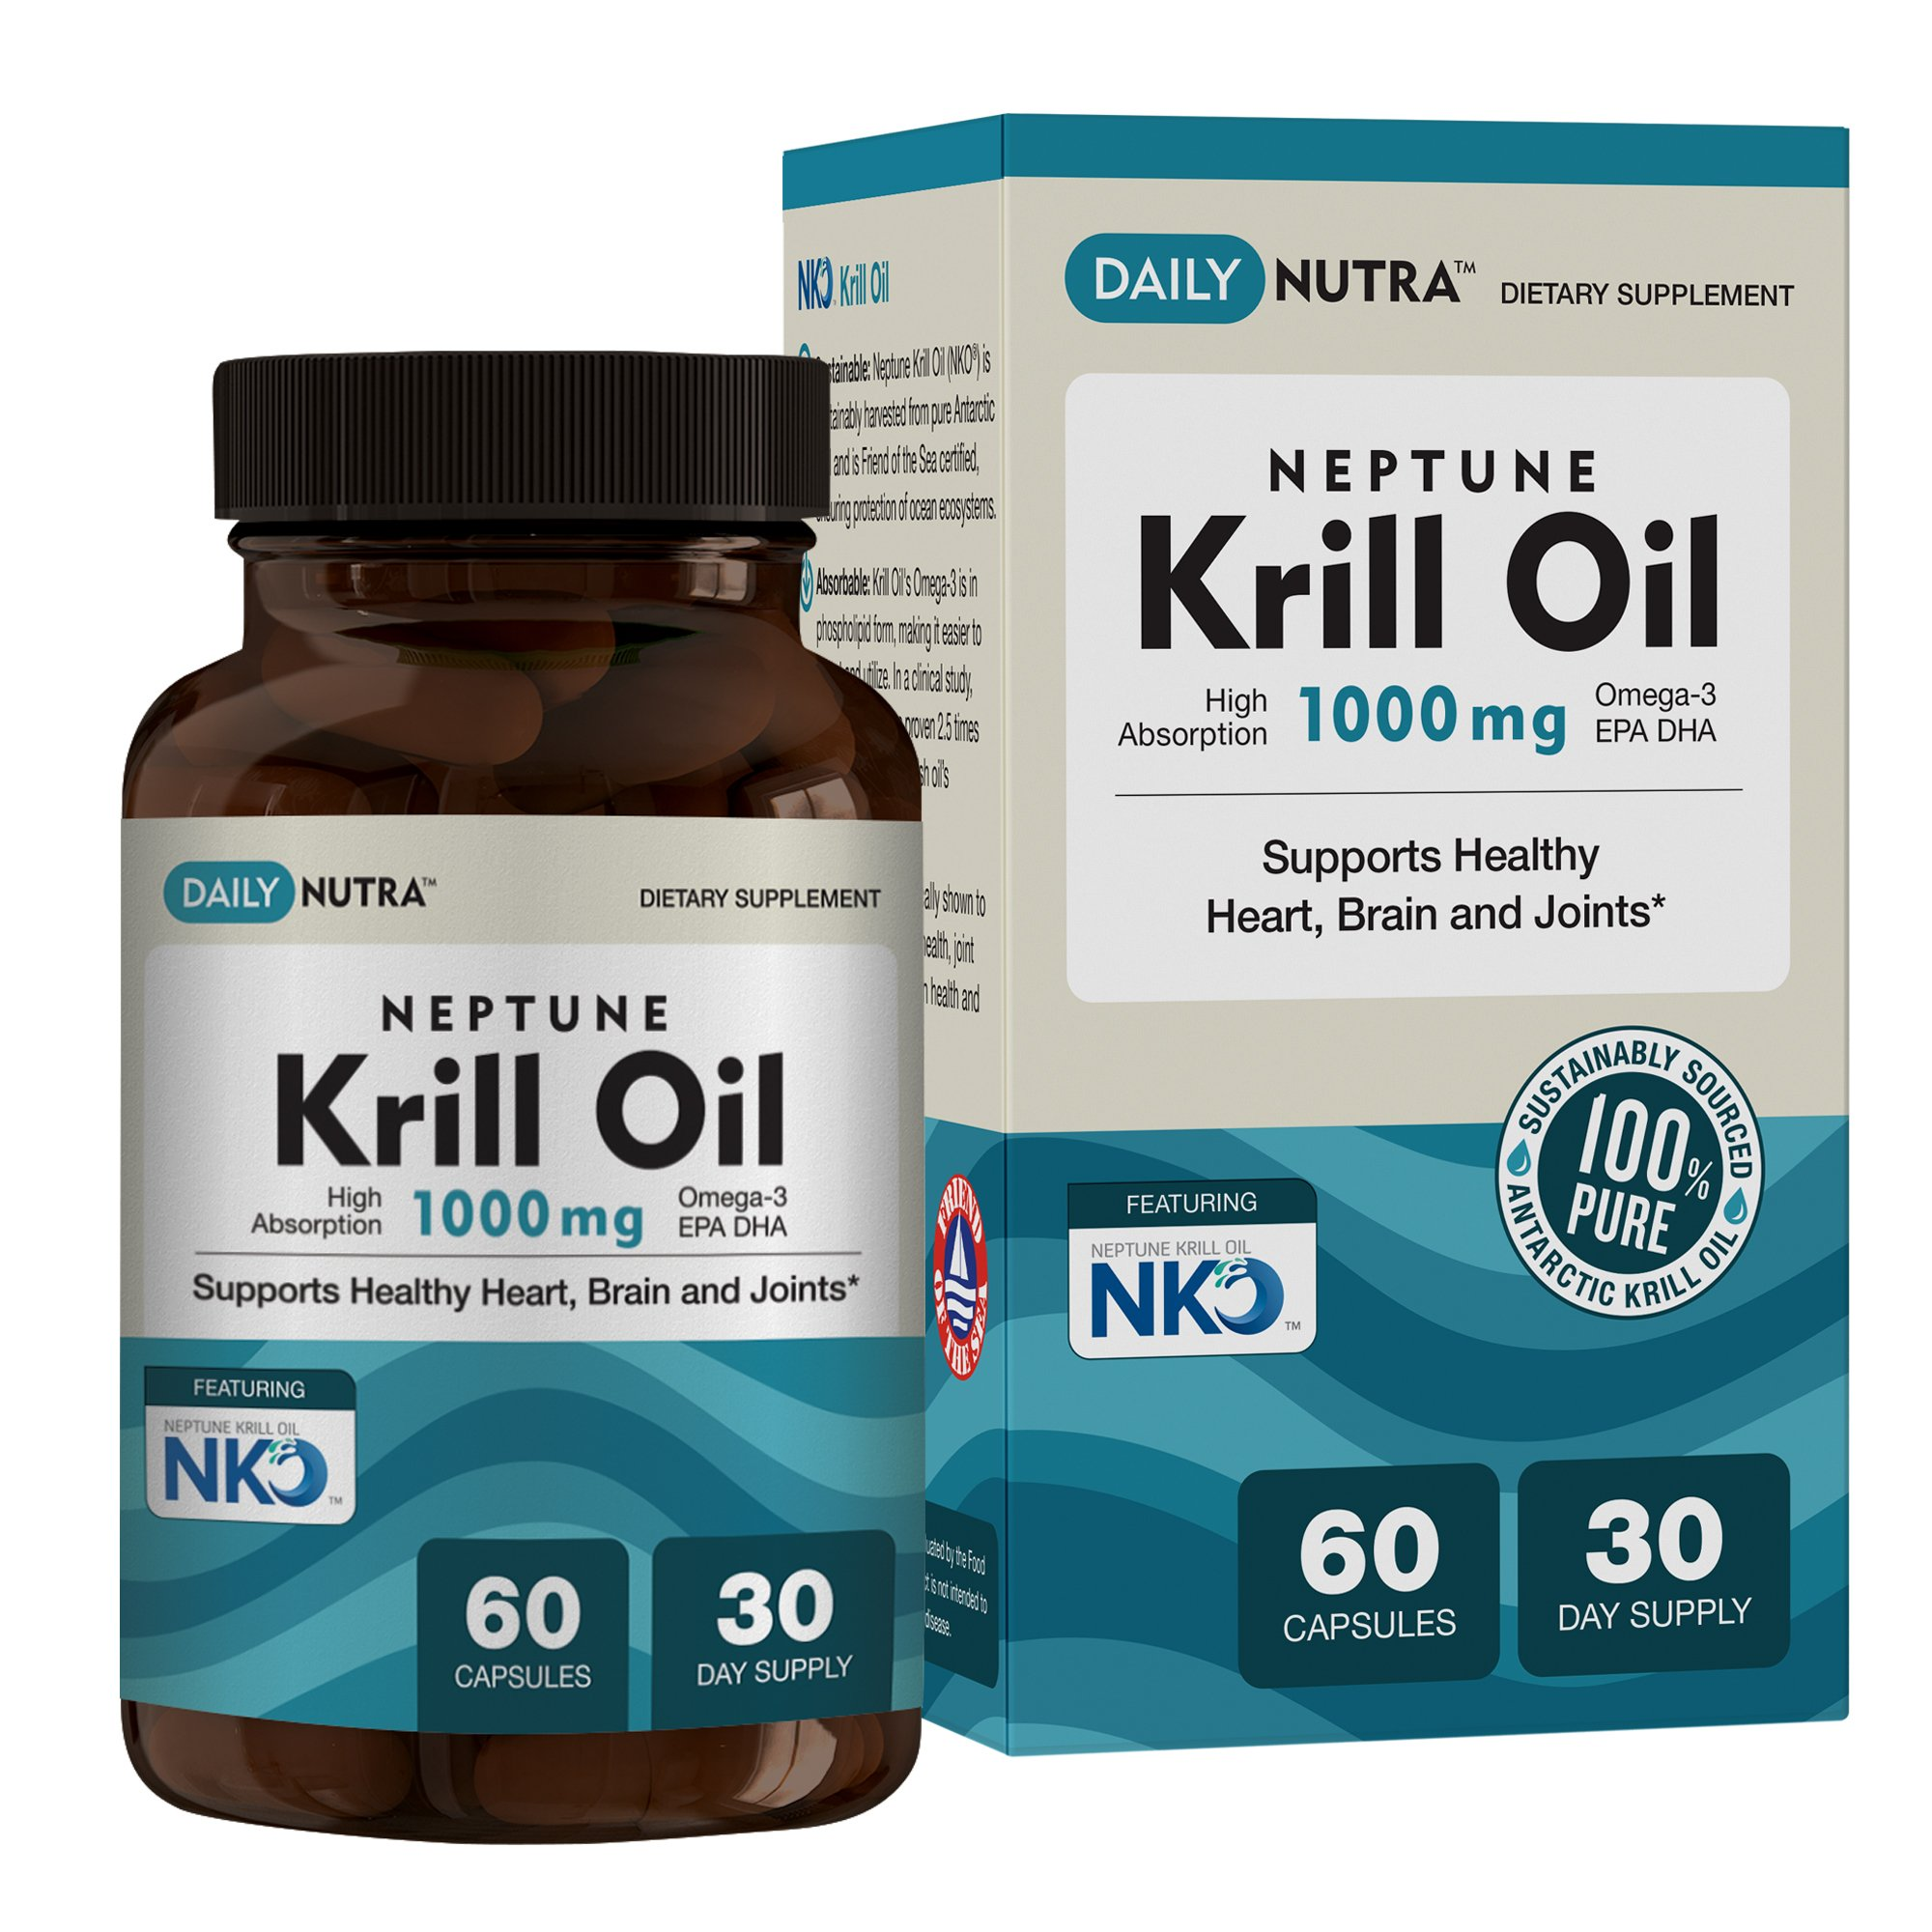 Neptune Krill Oil 1000mg High Absorption Omega-3 EPA DHA & Astaxanthin. Pure and Sustainable. Clinically shown to support healthy heart, brain and joints (60 Softgel Capsules)